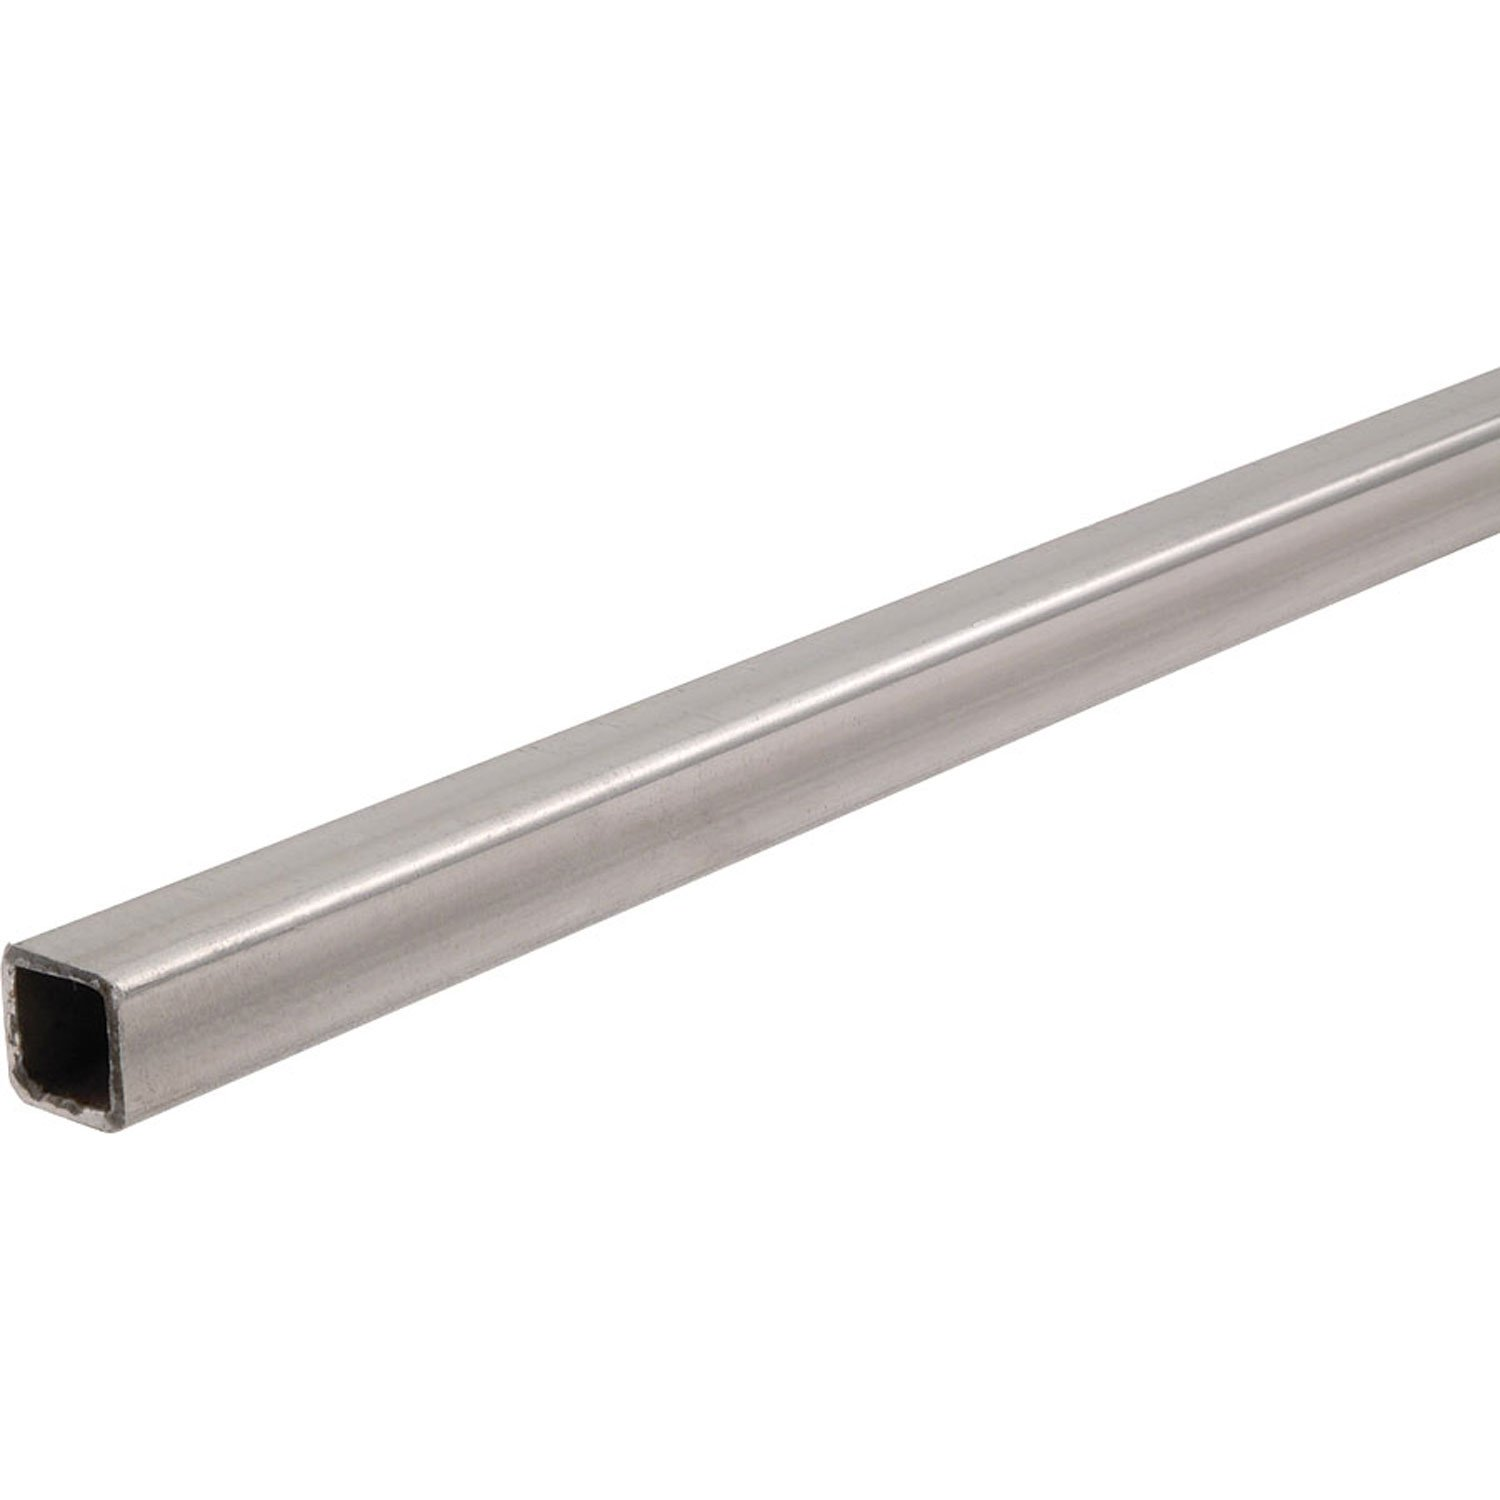 Unpolished (Mill) 1008-1010 Steel Square Tube, 2'' Square Tube, 0.083'' Wall Thickness, 1.834'' Inner Diameter, 4' Length